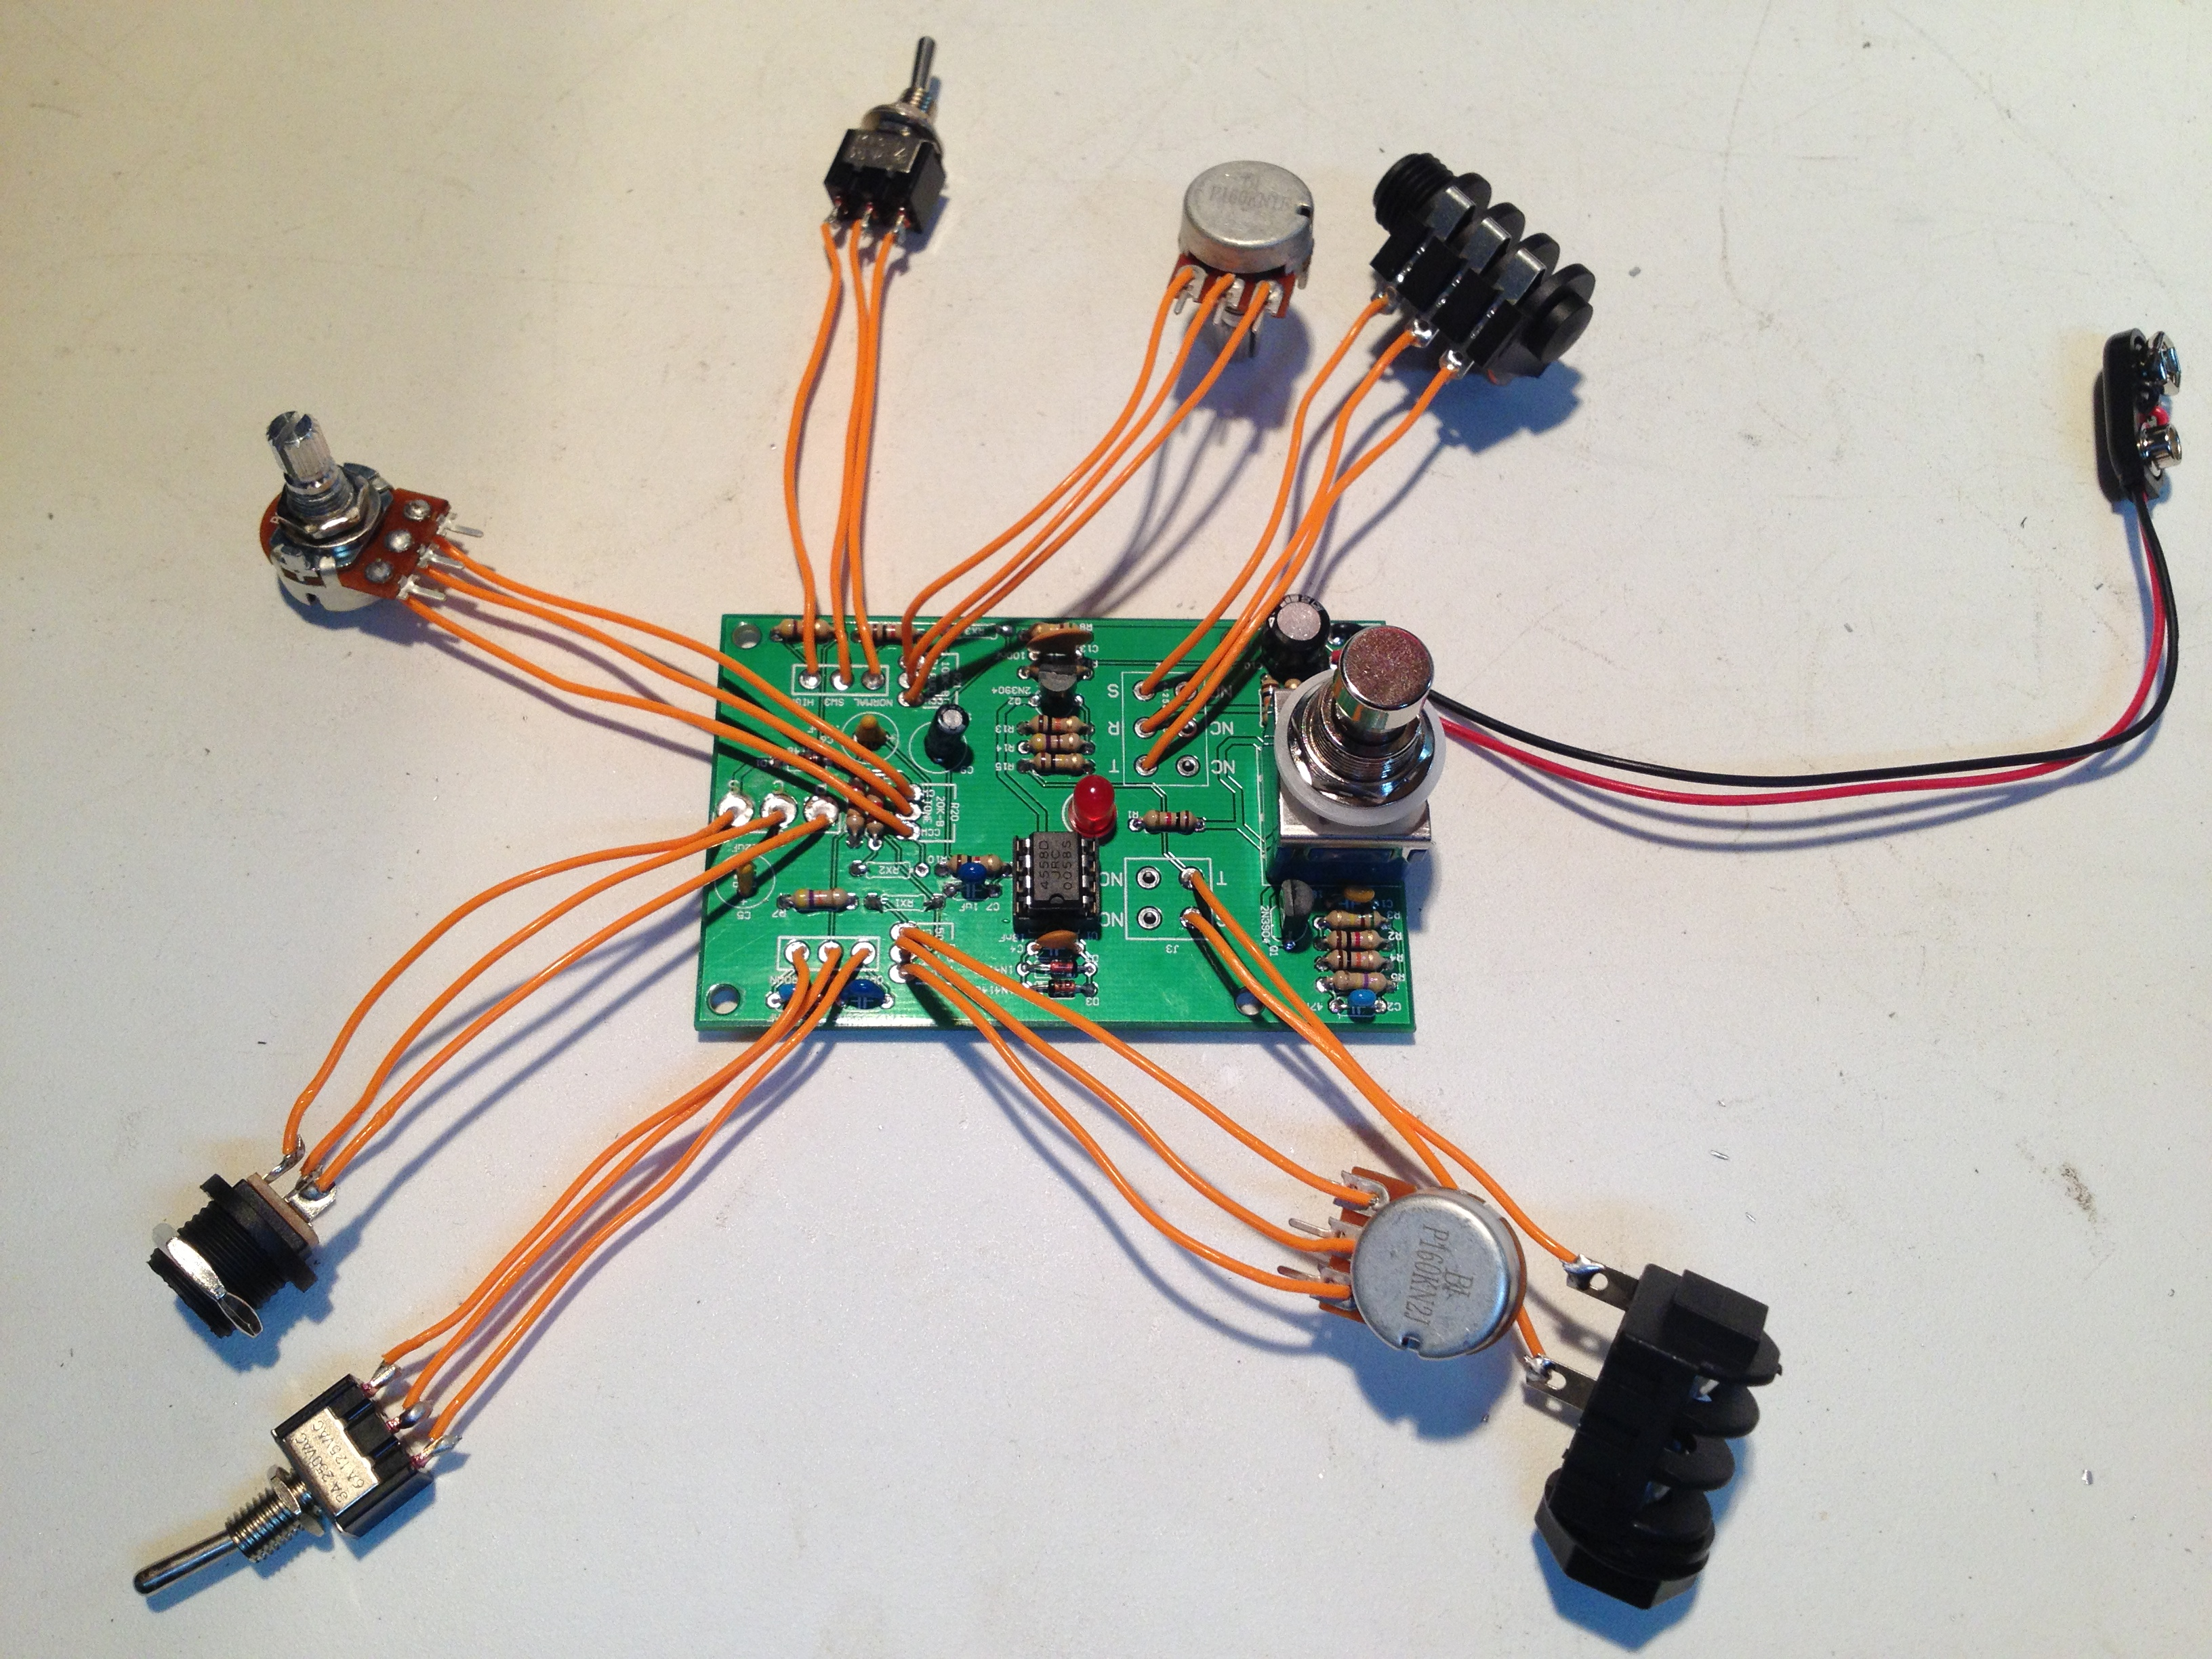 Tube Screamer Original Wired Synthrotek Wiring A Dc Jack Plug Also With Install The Potentiometers Orientation Shown Above Adjustment Knob Facing You Left Pin Should Be Connected To Contact